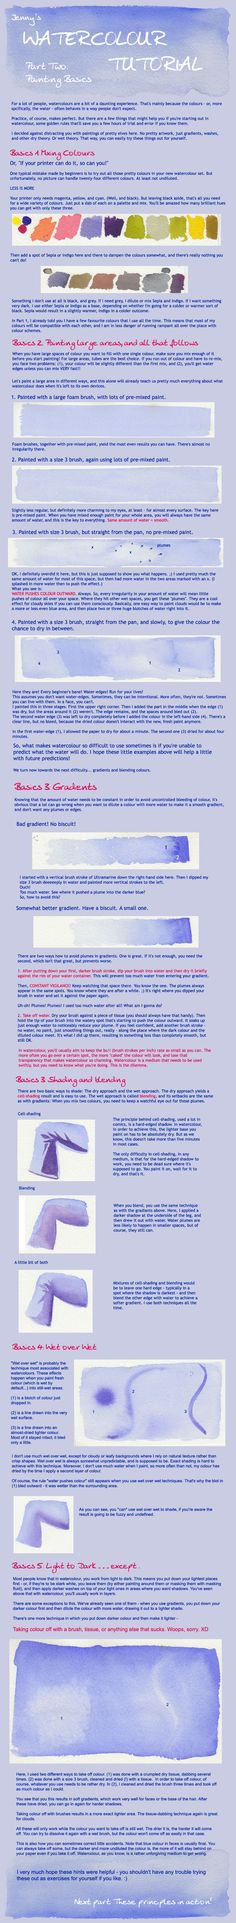 Watercolour 2 : Painting Basics ~by =Gold-Seven Watercolor Tips, Watercolour Tutorials, Watercolor Techniques, Watercolour Painting, Painting Techniques, Painting & Drawing, Watercolours, Painting Lessons, Painting Tips